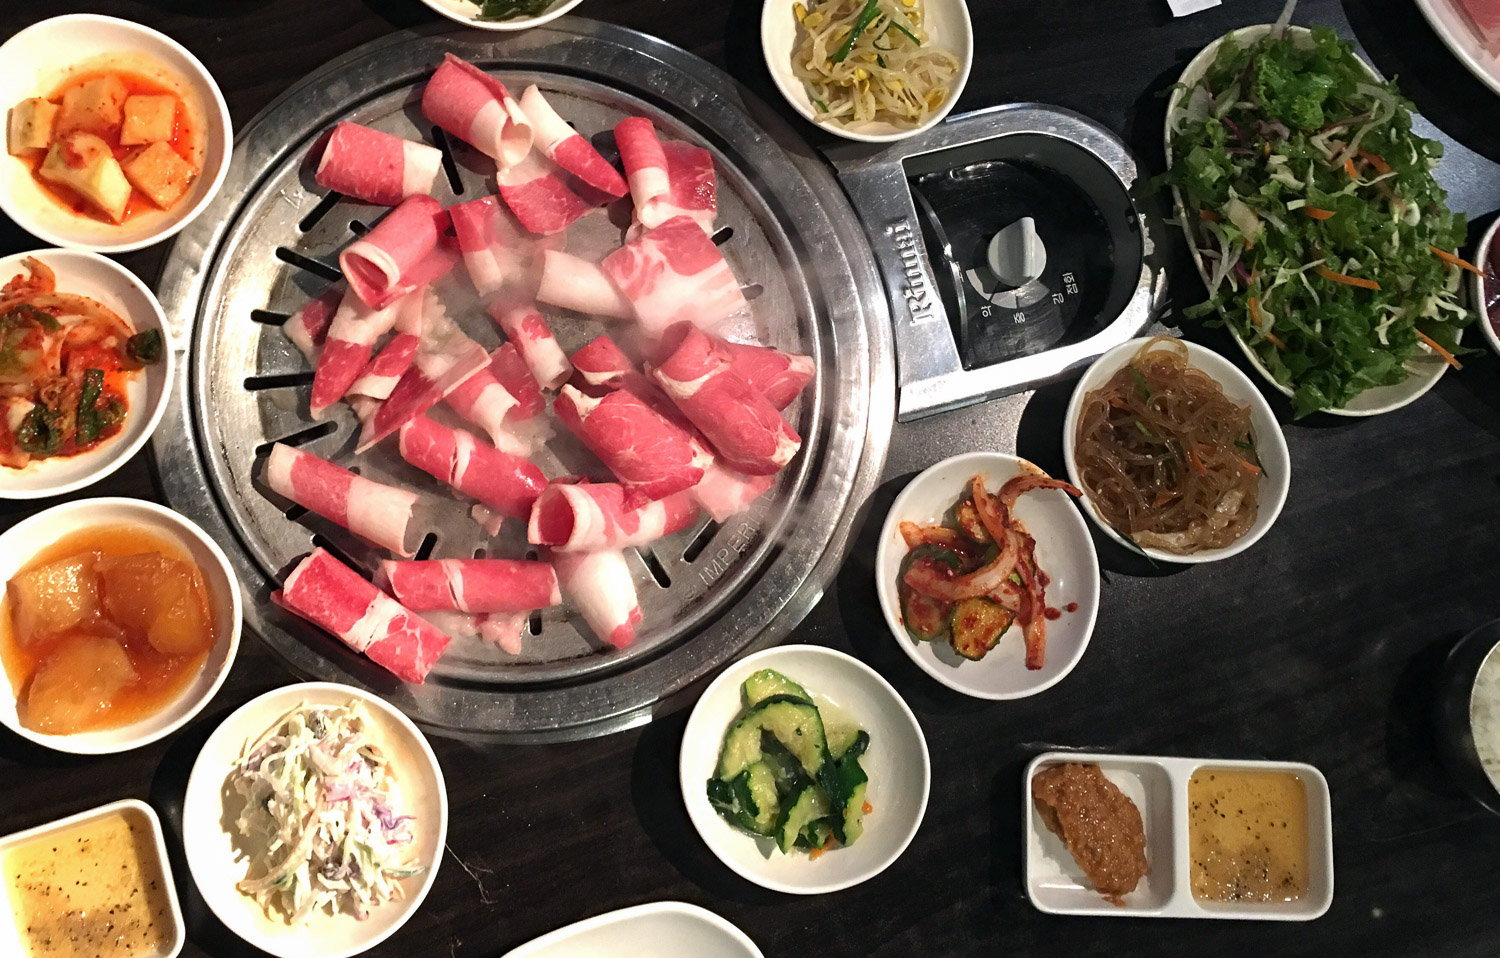 BBQ and banchan. Google Images.